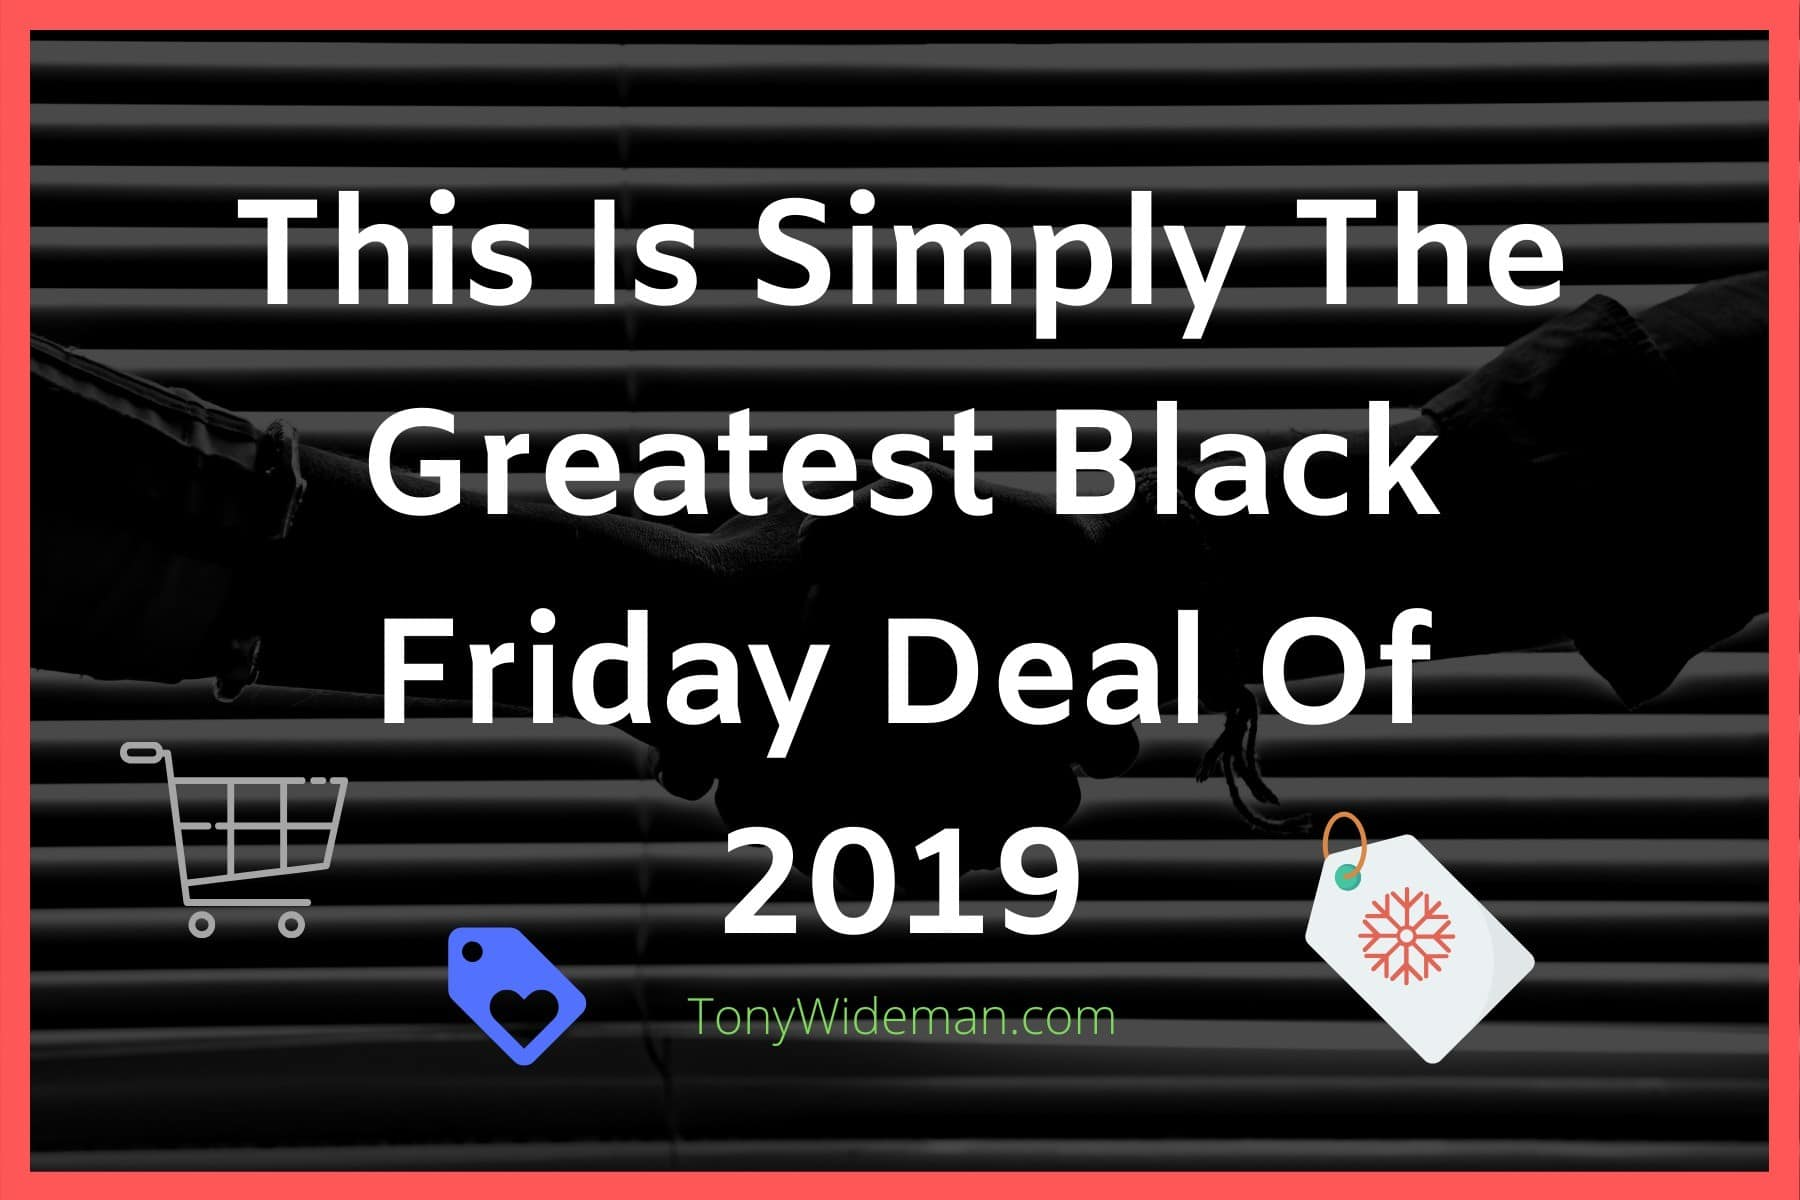 This Is Simply The Greatest Black Friday Deal Of 2019